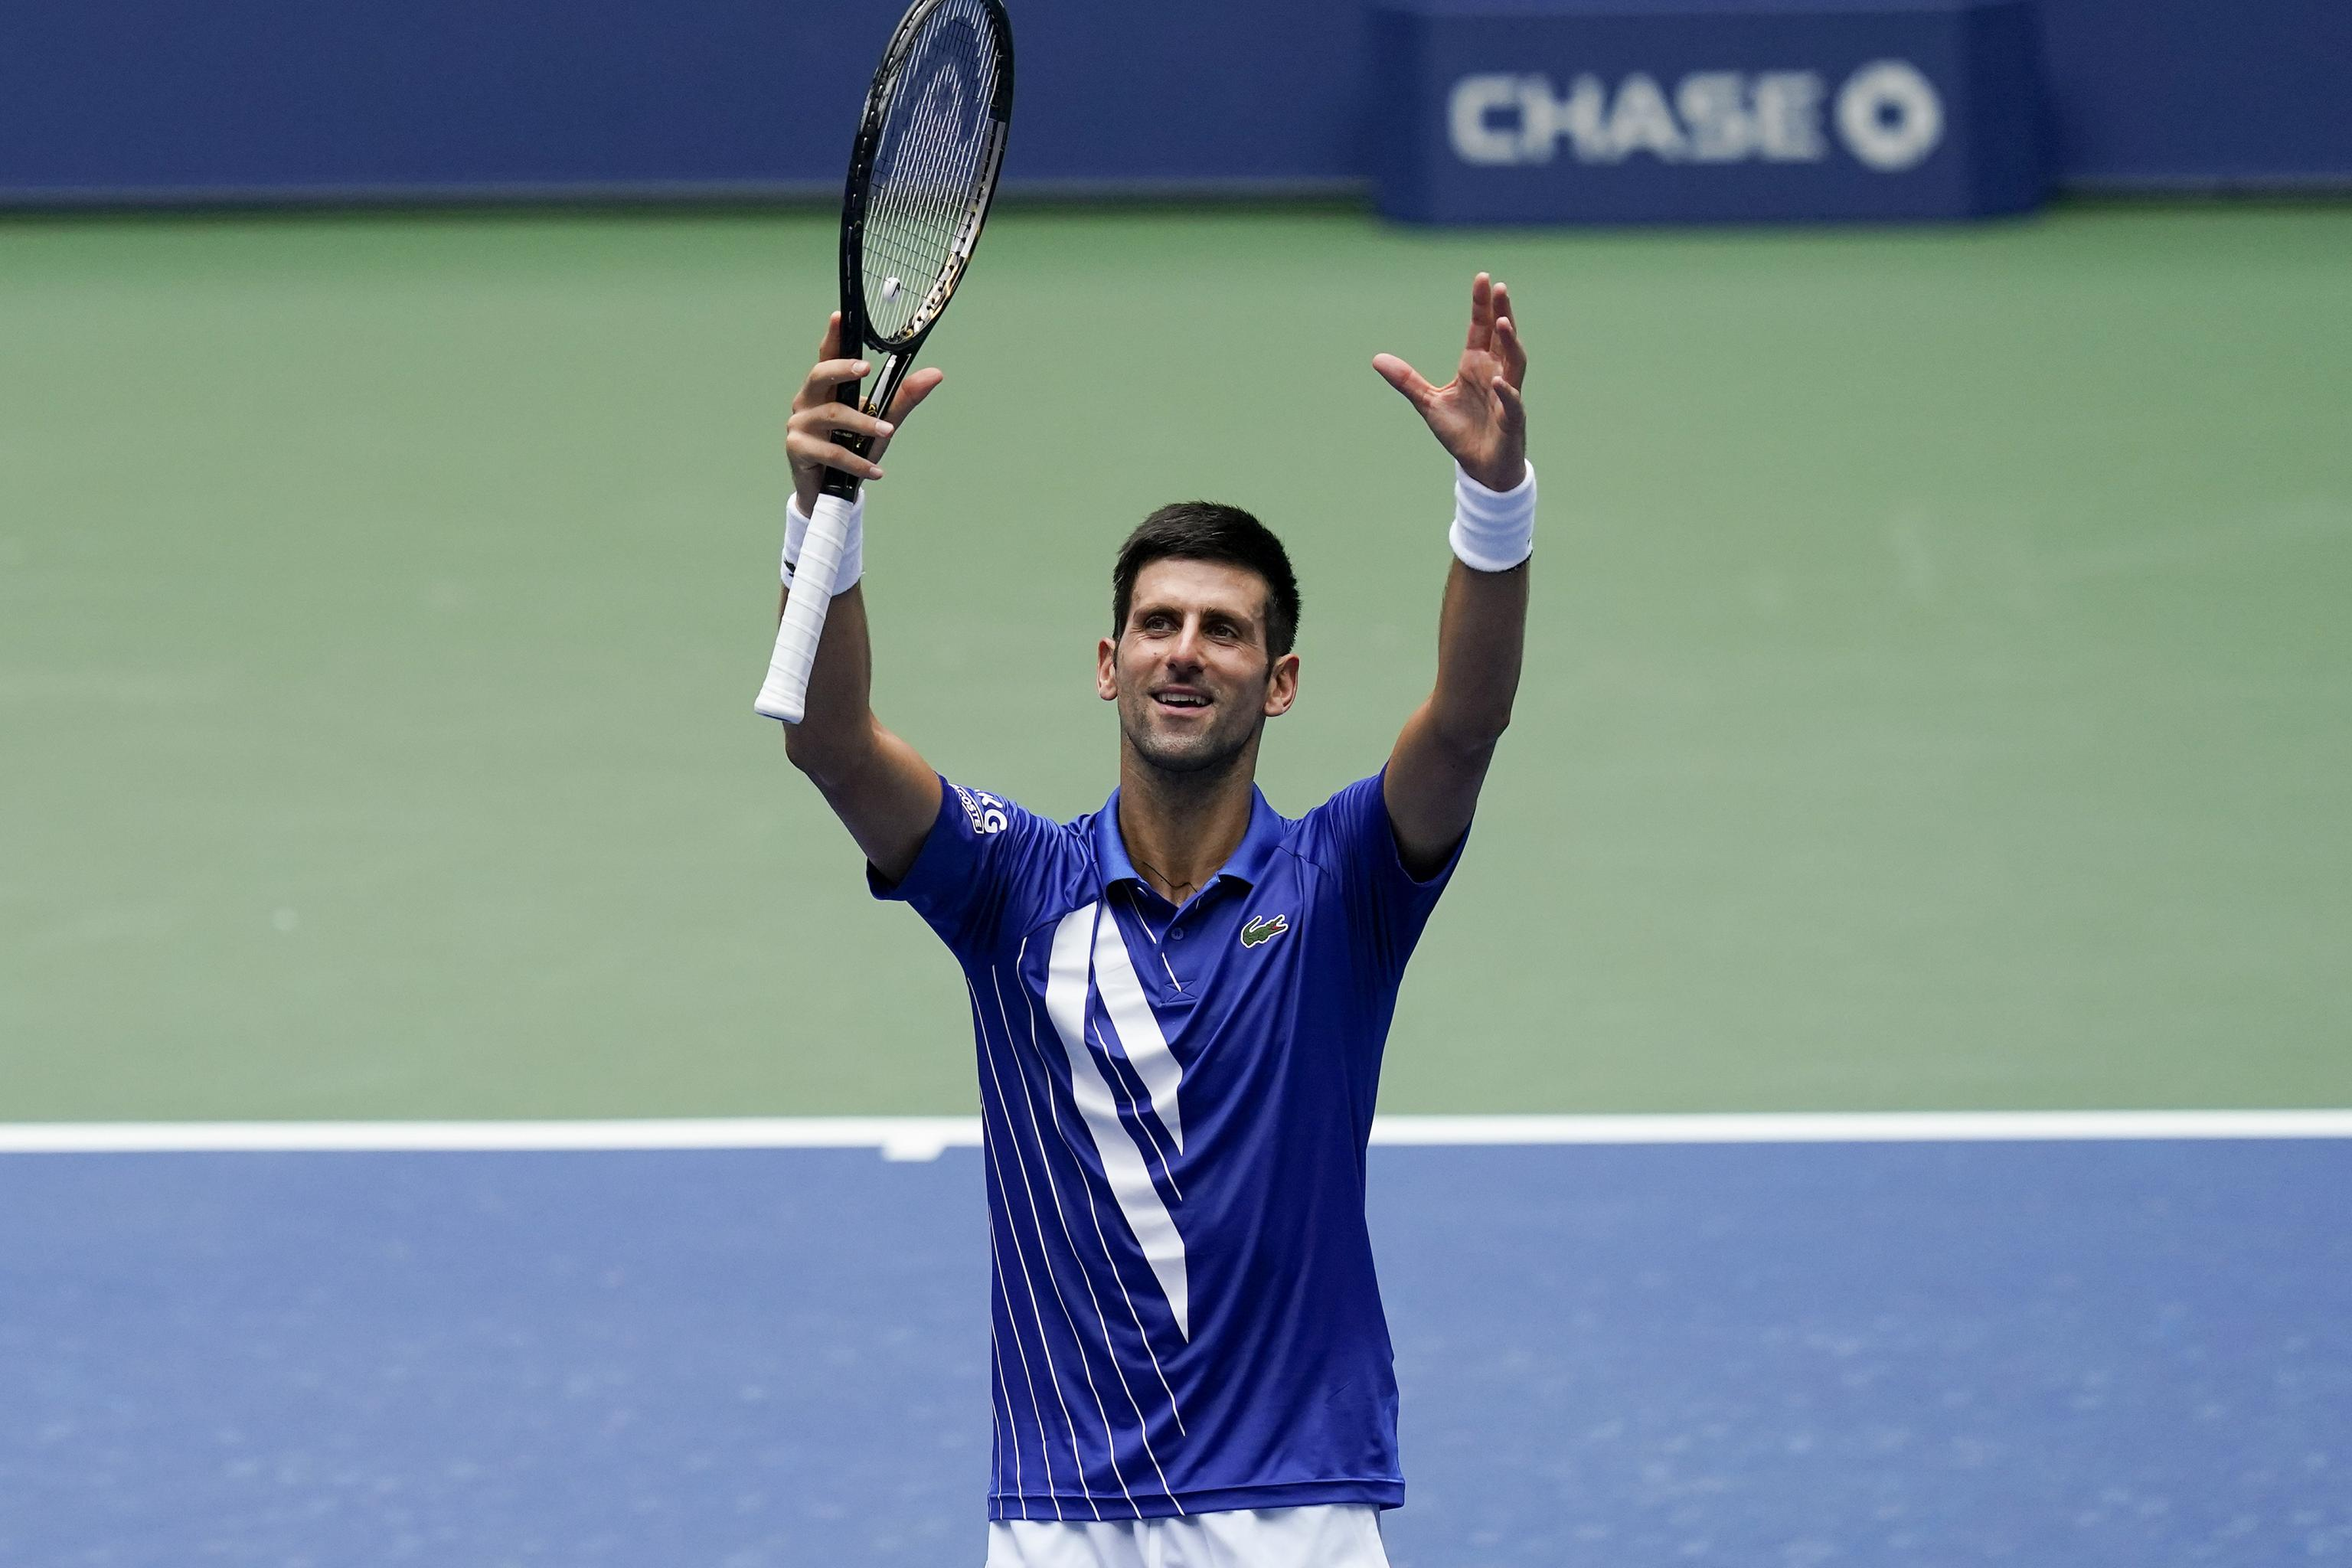 Us Open Tennis 2020 Results Winners Scores More For Wednesday Singles Bracket Bleacher Report Latest News Videos And Highlights